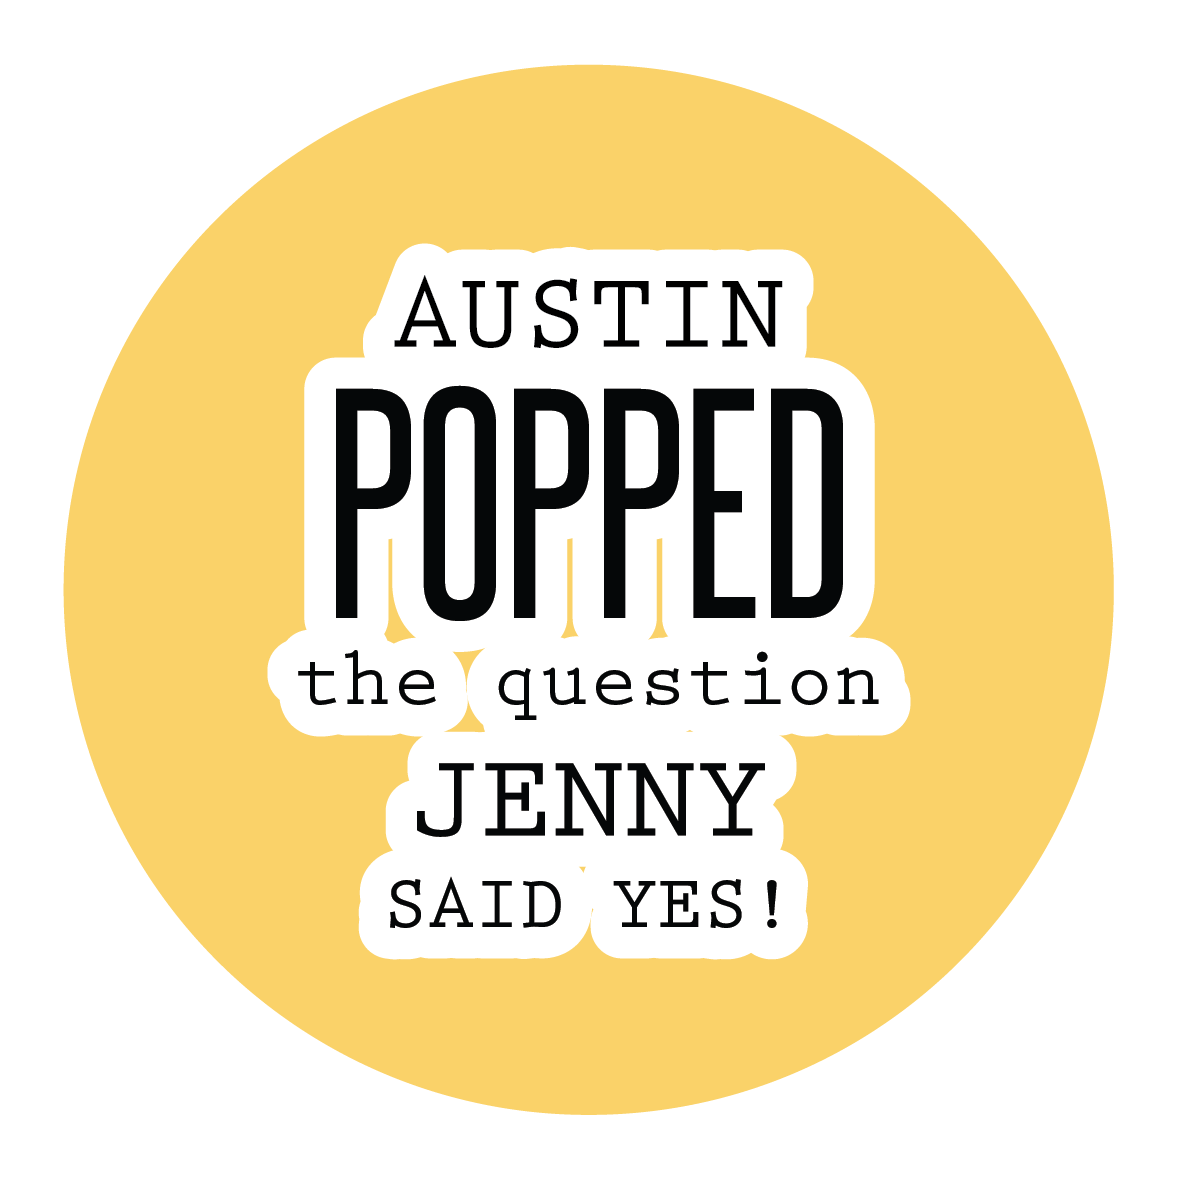 He Popped The Question Sticker, Couples Engagement Party Popcorn Favors - Invited Too